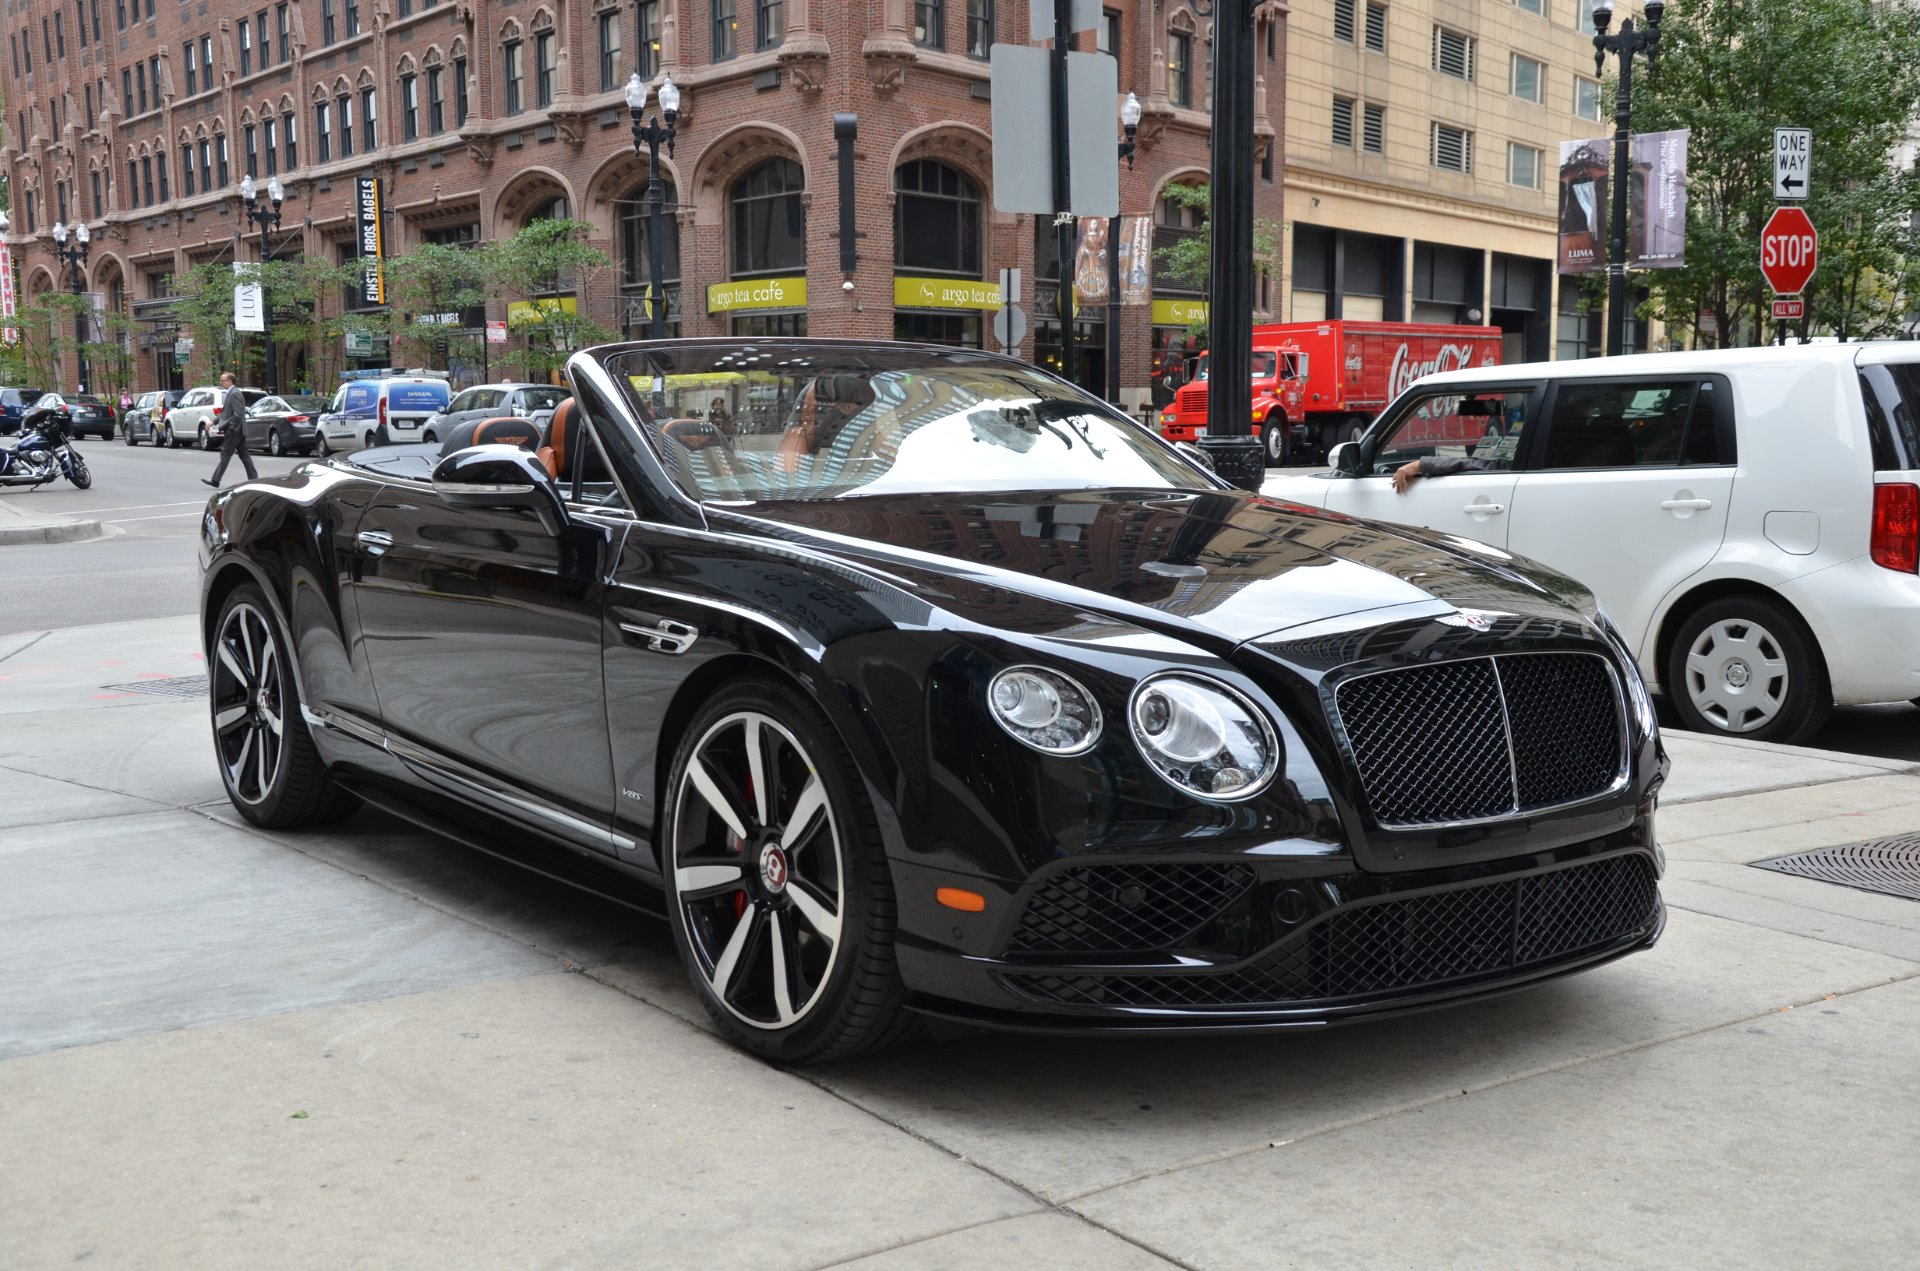 2017 bentley continental gtc v8 s stock b837 s for sale near chicago il il bentley dealer. Black Bedroom Furniture Sets. Home Design Ideas